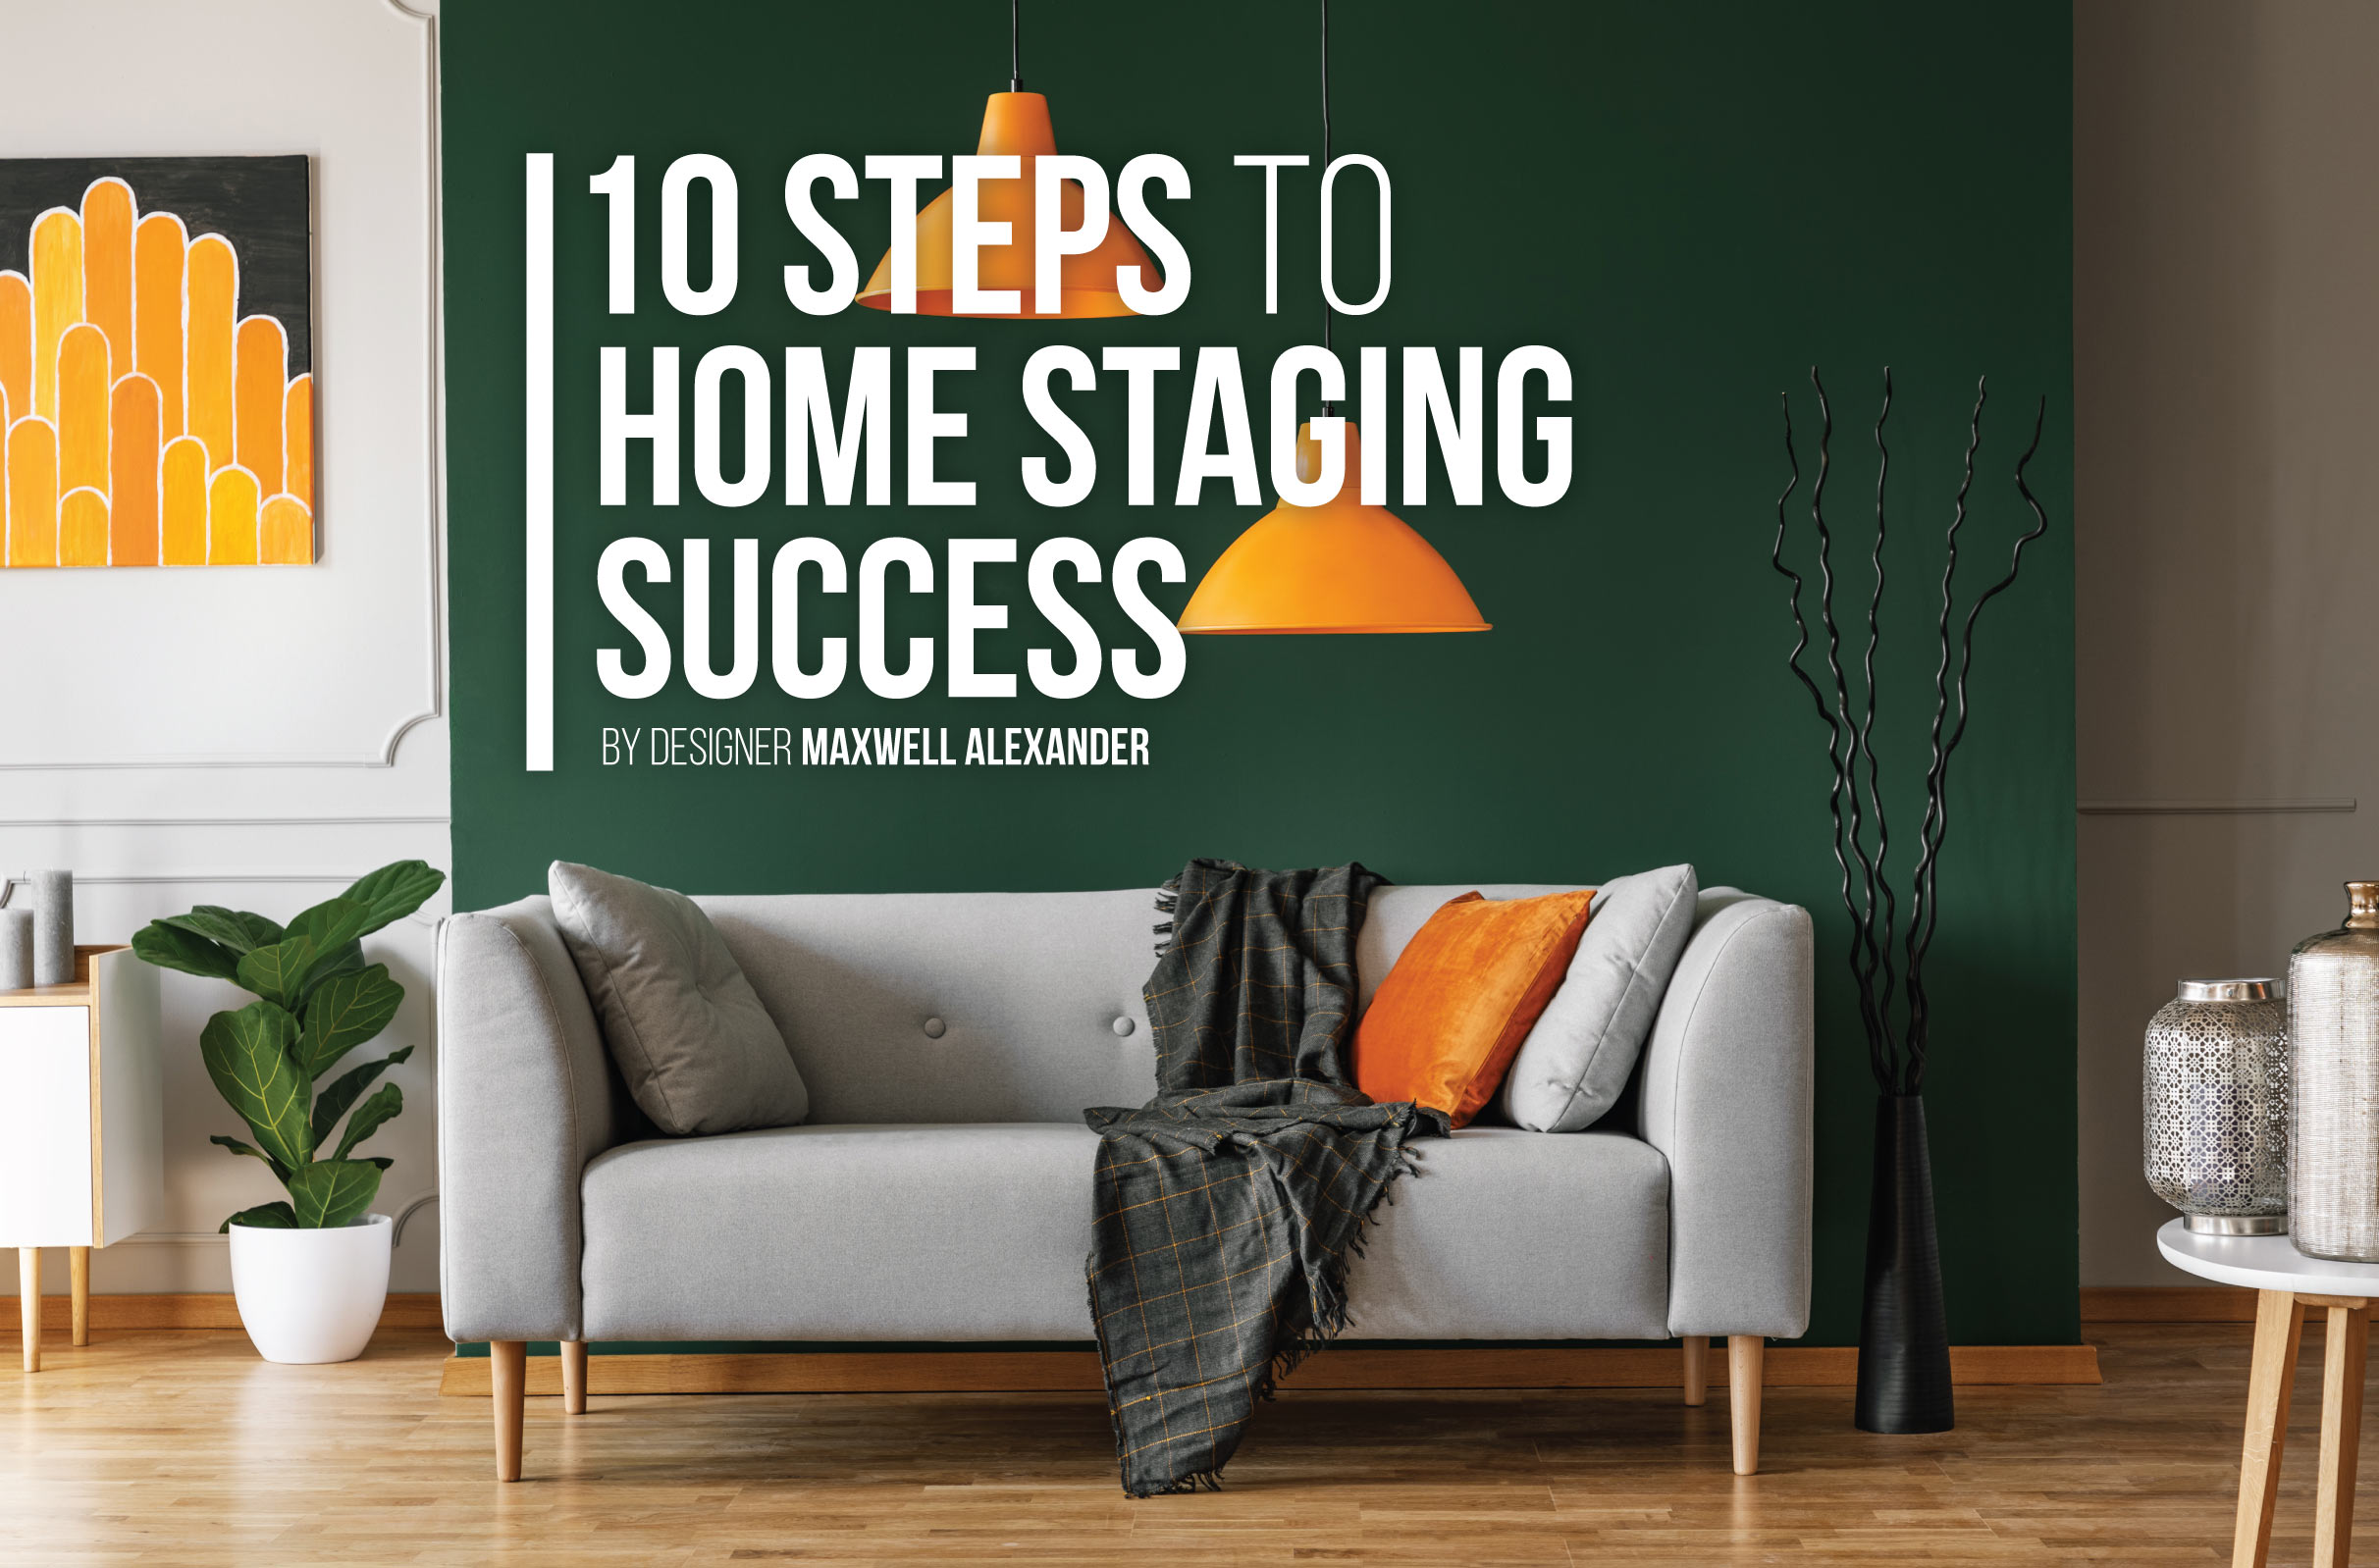 10 Steps to Home Staging Success by Designer Maxwell Alexander